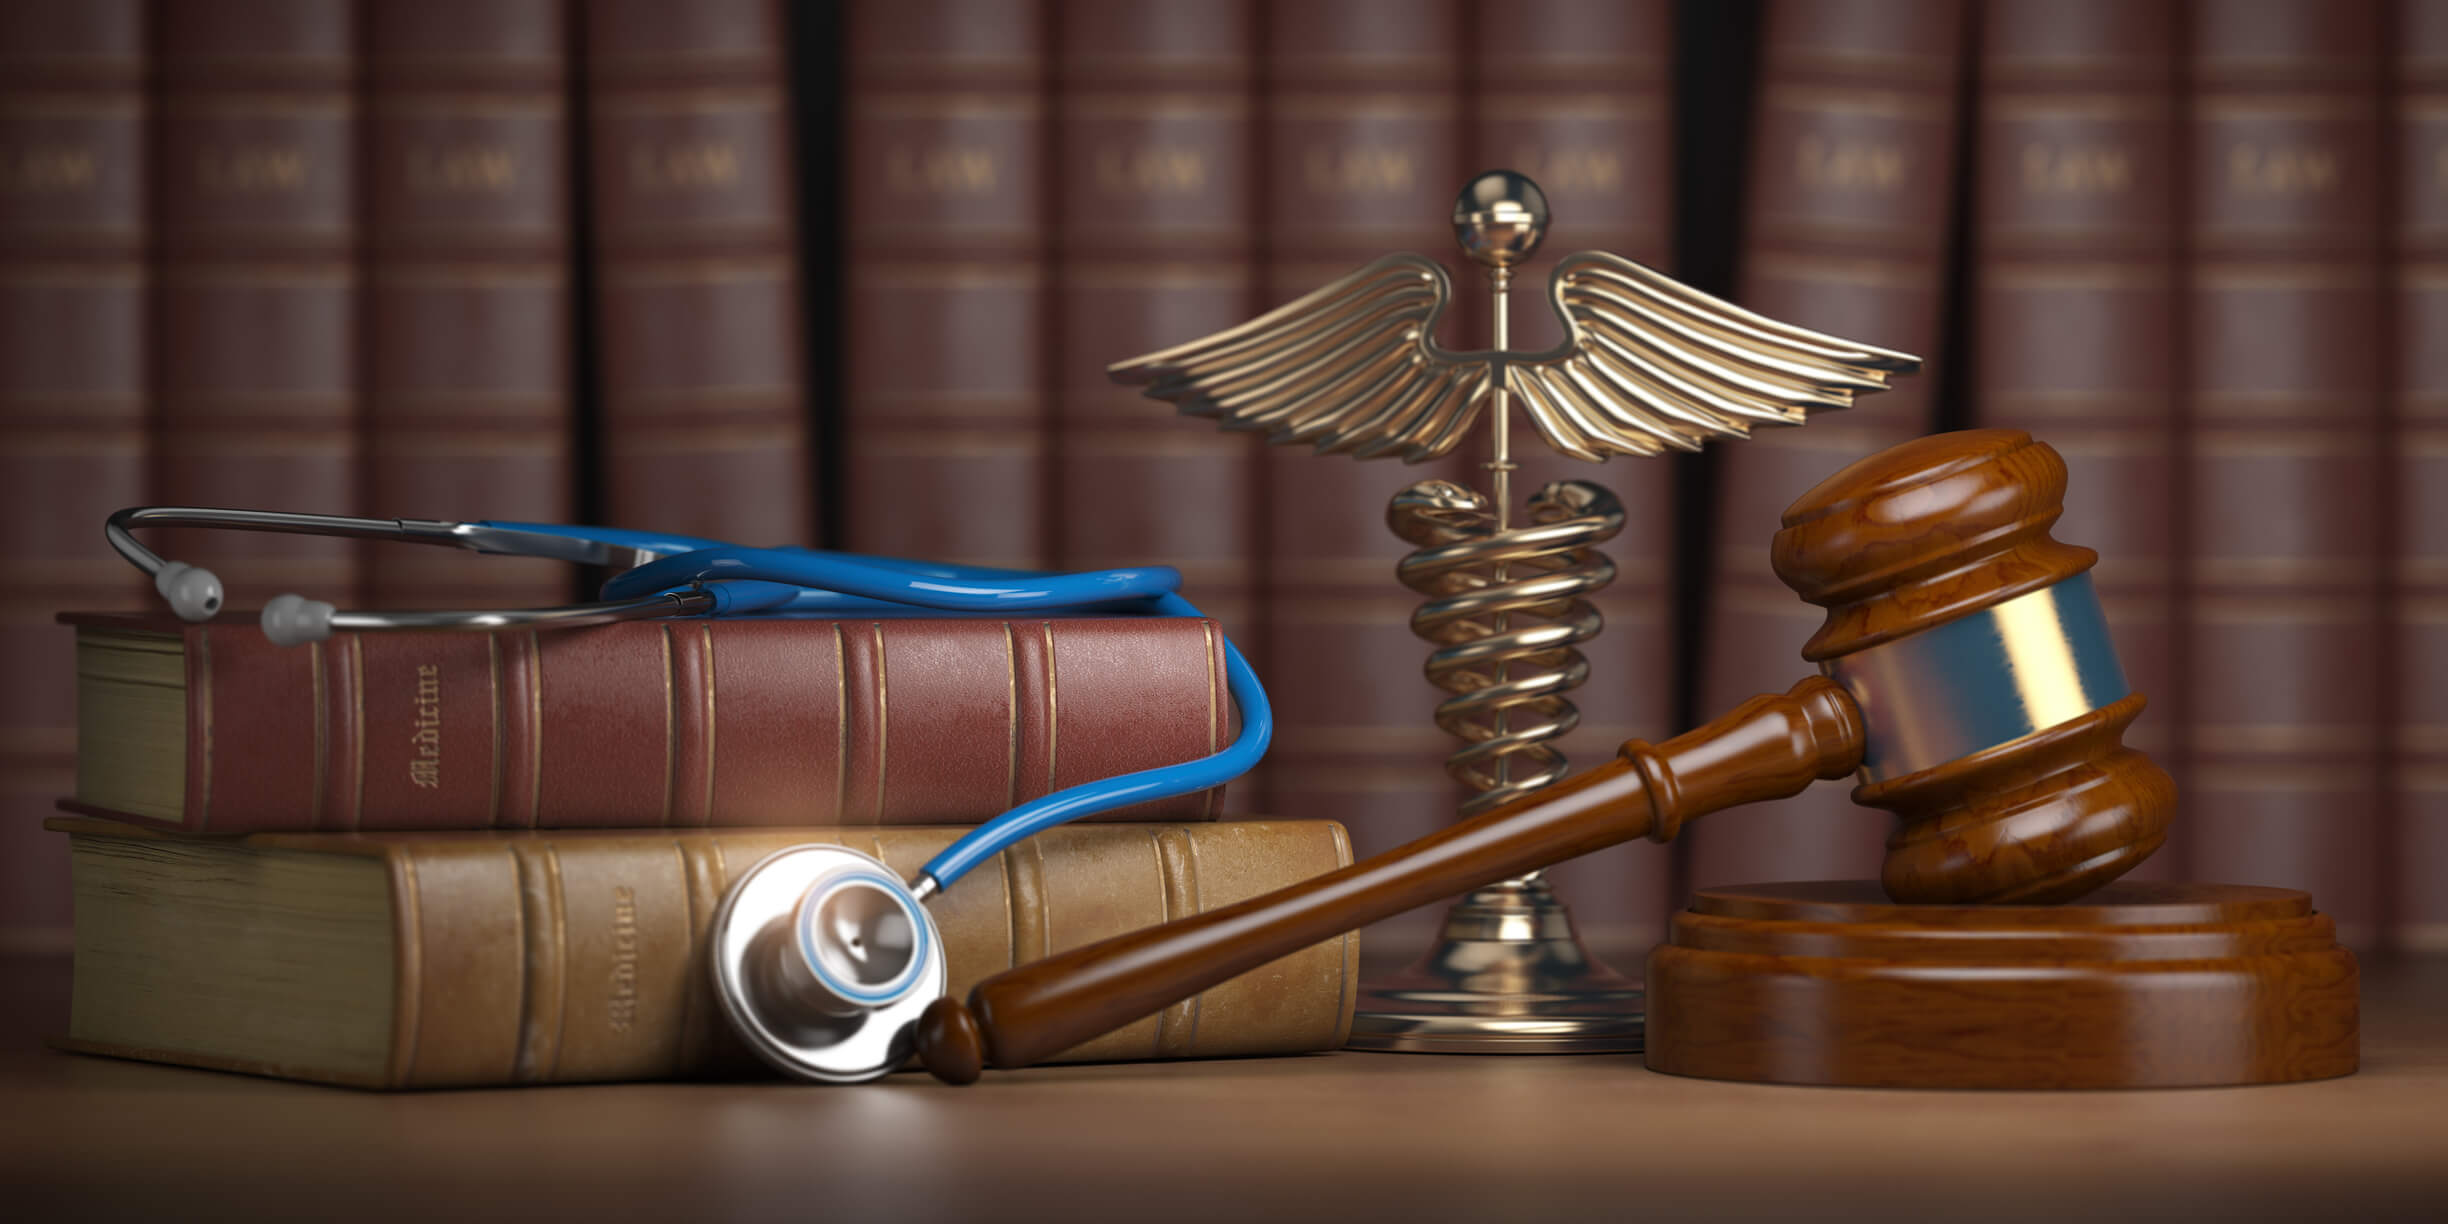 Nagel Rice, LLP discusses ways to prove a medical malpractice case in court.